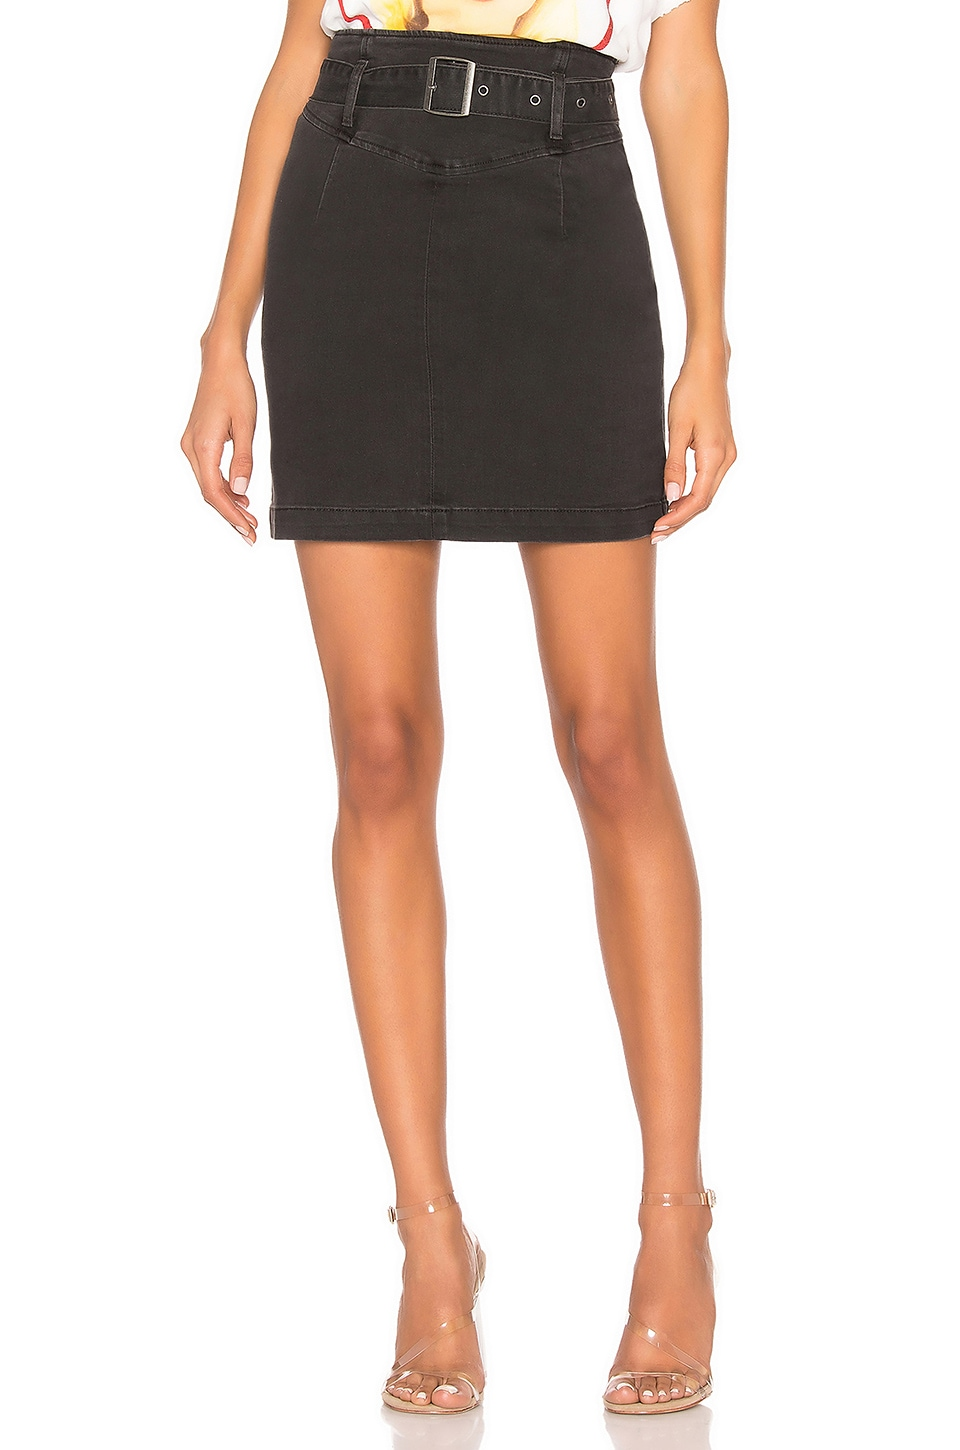 Free People Livin It Up Pencil Skirt in Black